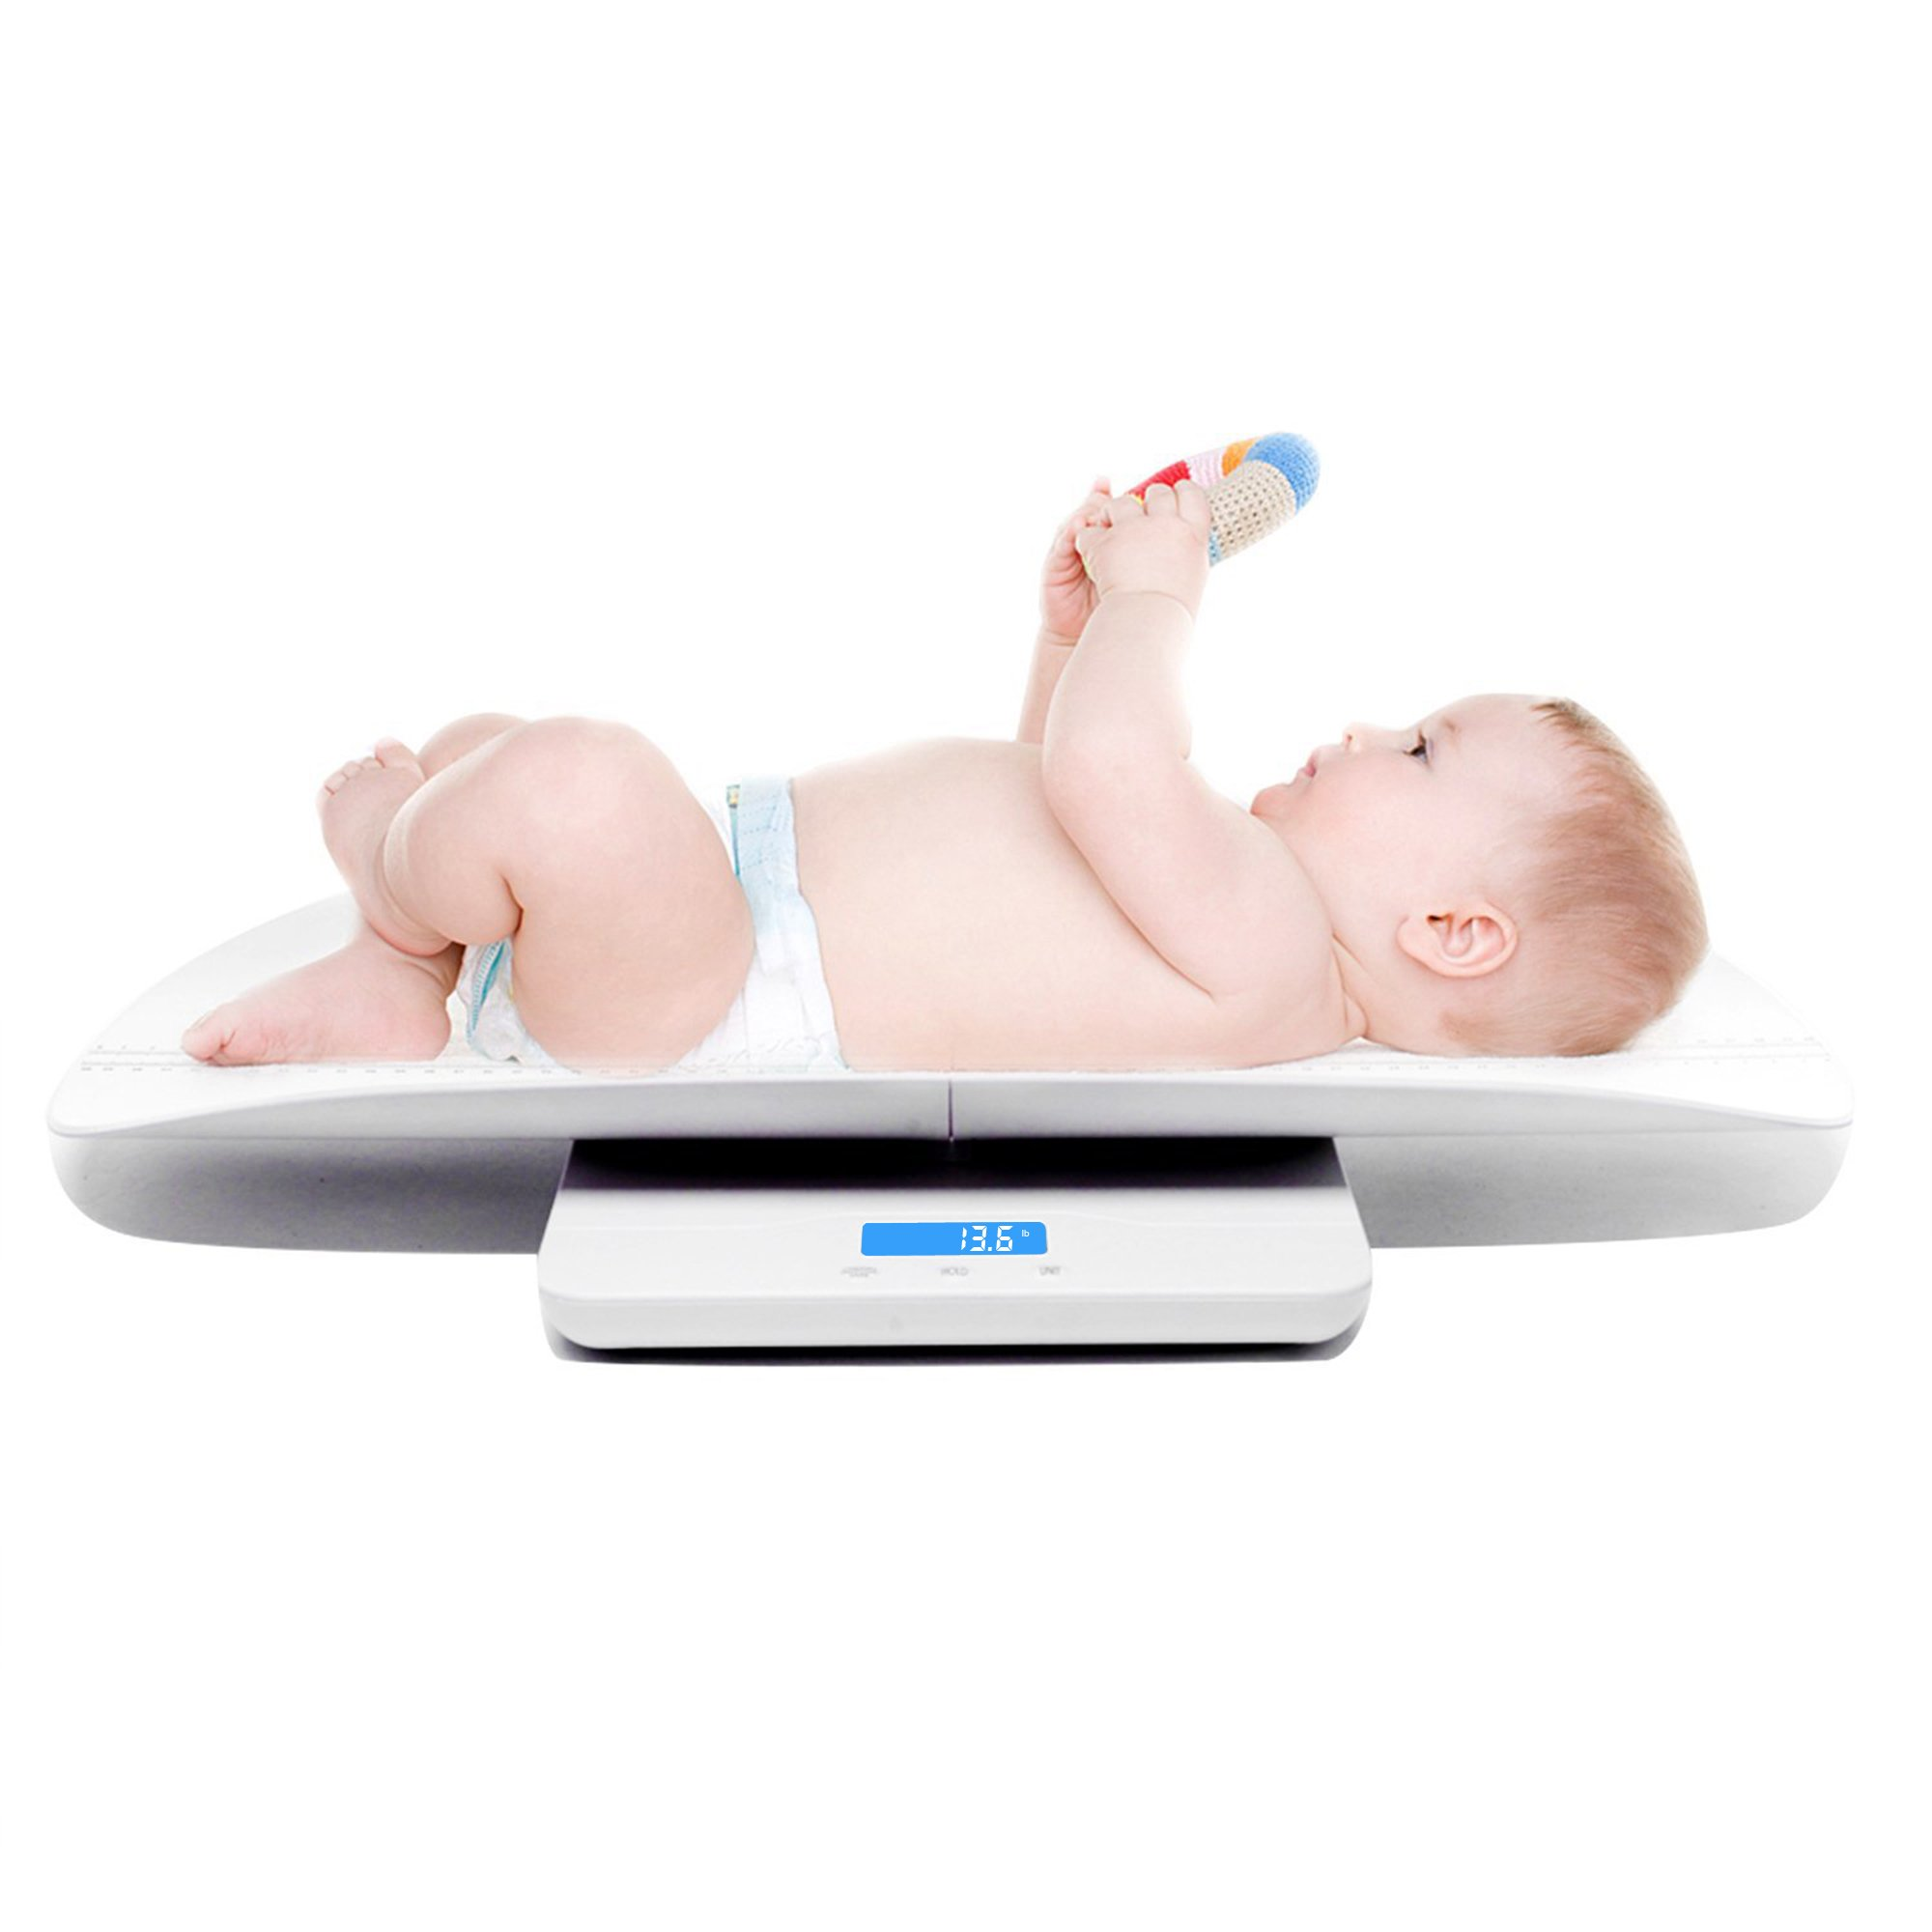 Baby Scale Multi-Function Accurately Digital Baby Infant Toddler Scale with Height Tray Weight(Max:220lbs) and Height(Max:60cm) 2-in-1 Baby to Toddler Scale